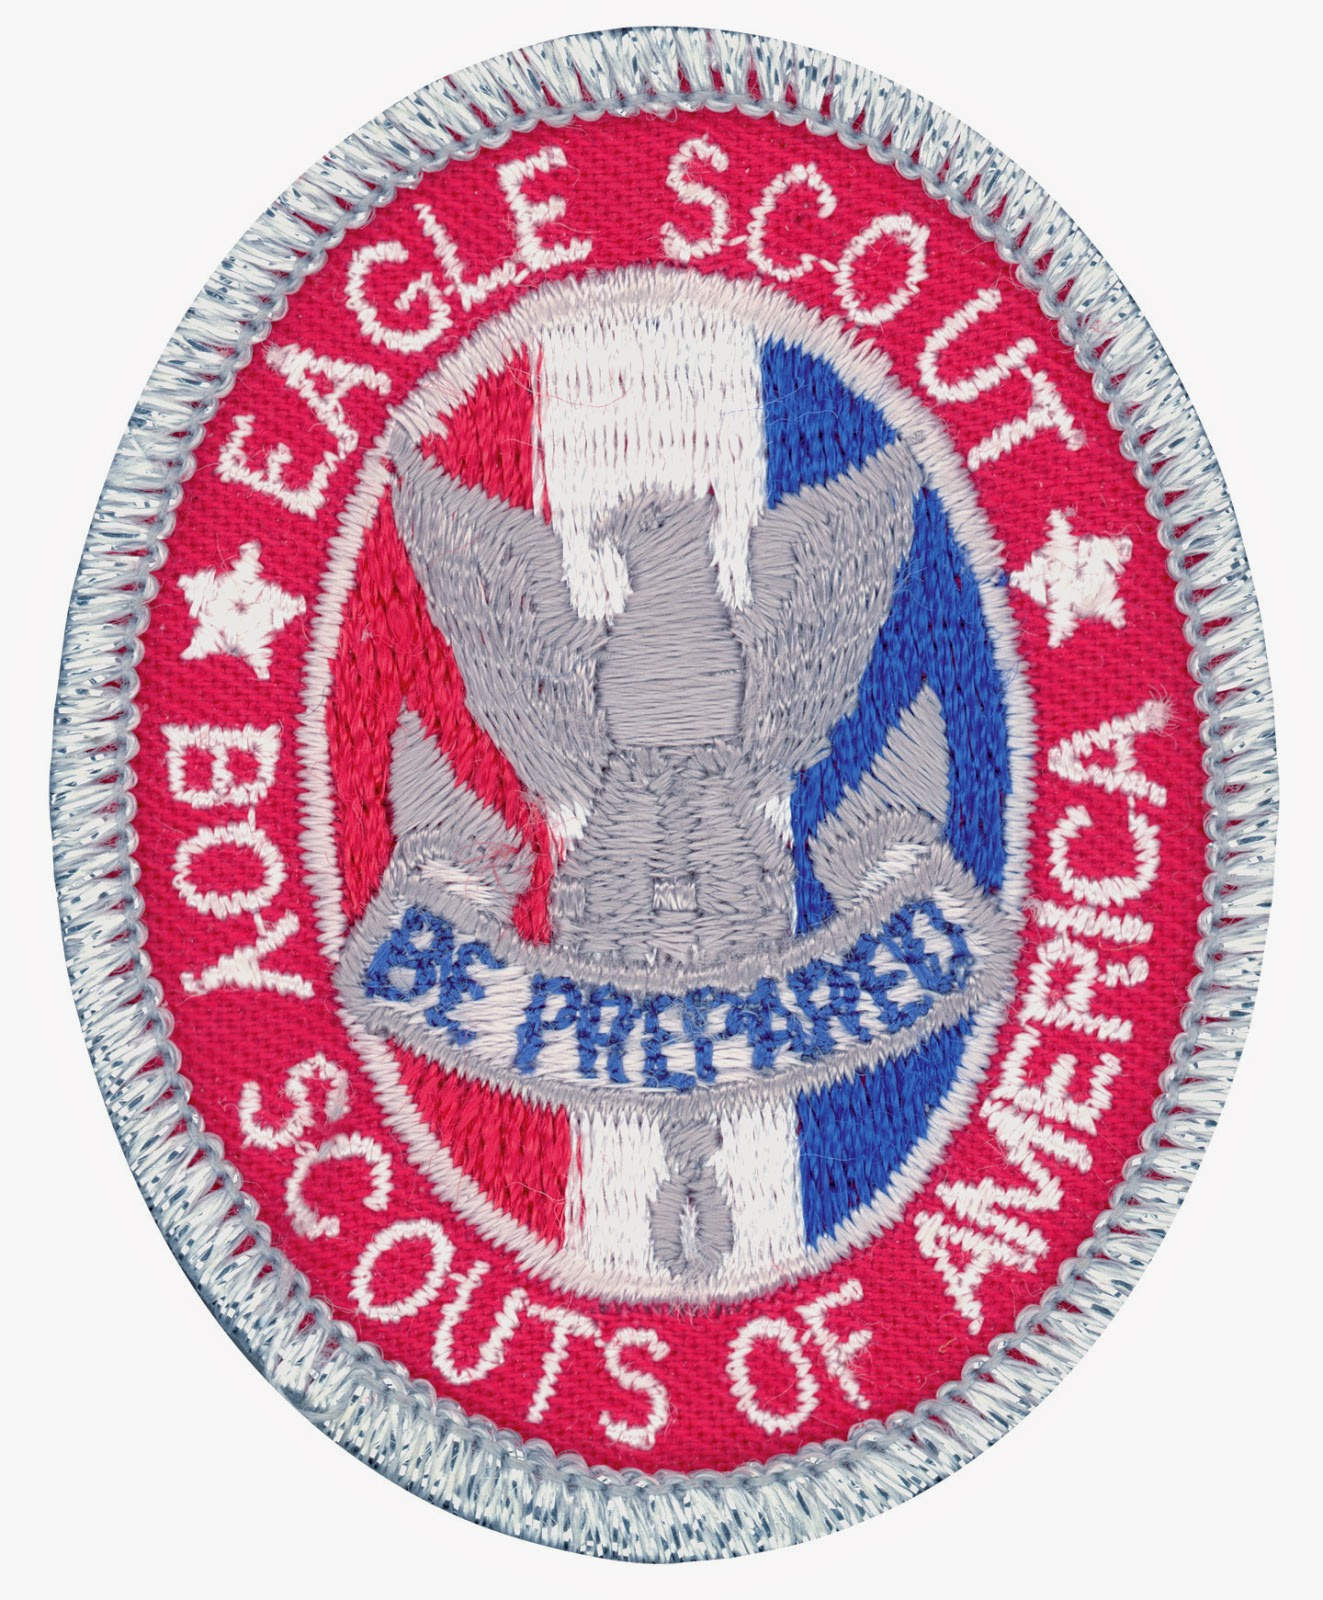 Scouts Bsa Troop 103 Miamisburg Ohio Hall Of Eagles